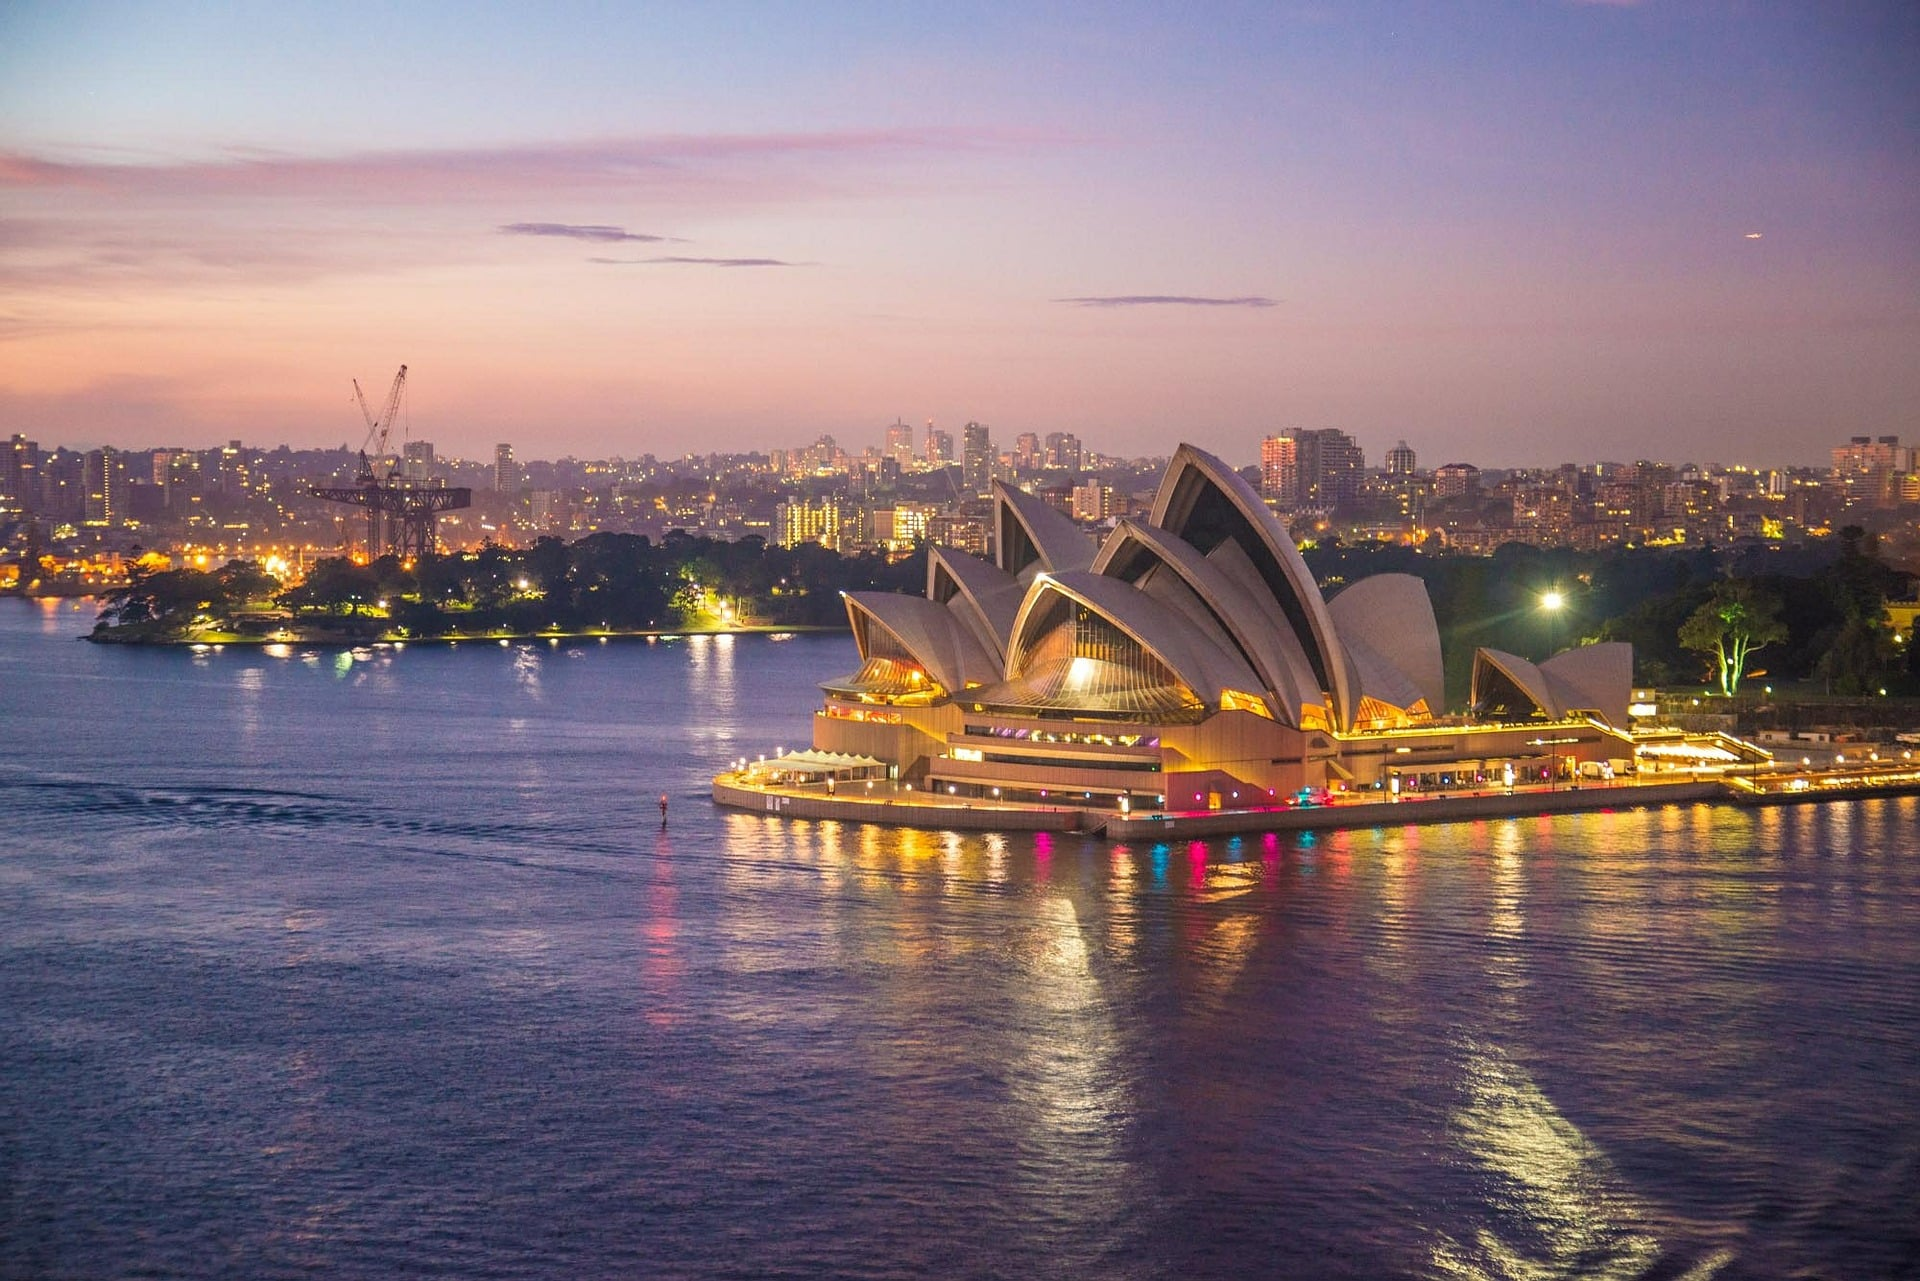 Book your tickets online for the top things to do in Sydney, Australia on TripAdvisor: See , traveler reviews and photos of Sydney tourist attractions. Find what to do today, this weekend, or in December. We have reviews of the best places to see in Sydney. Visit top-rated & must-see attractions.